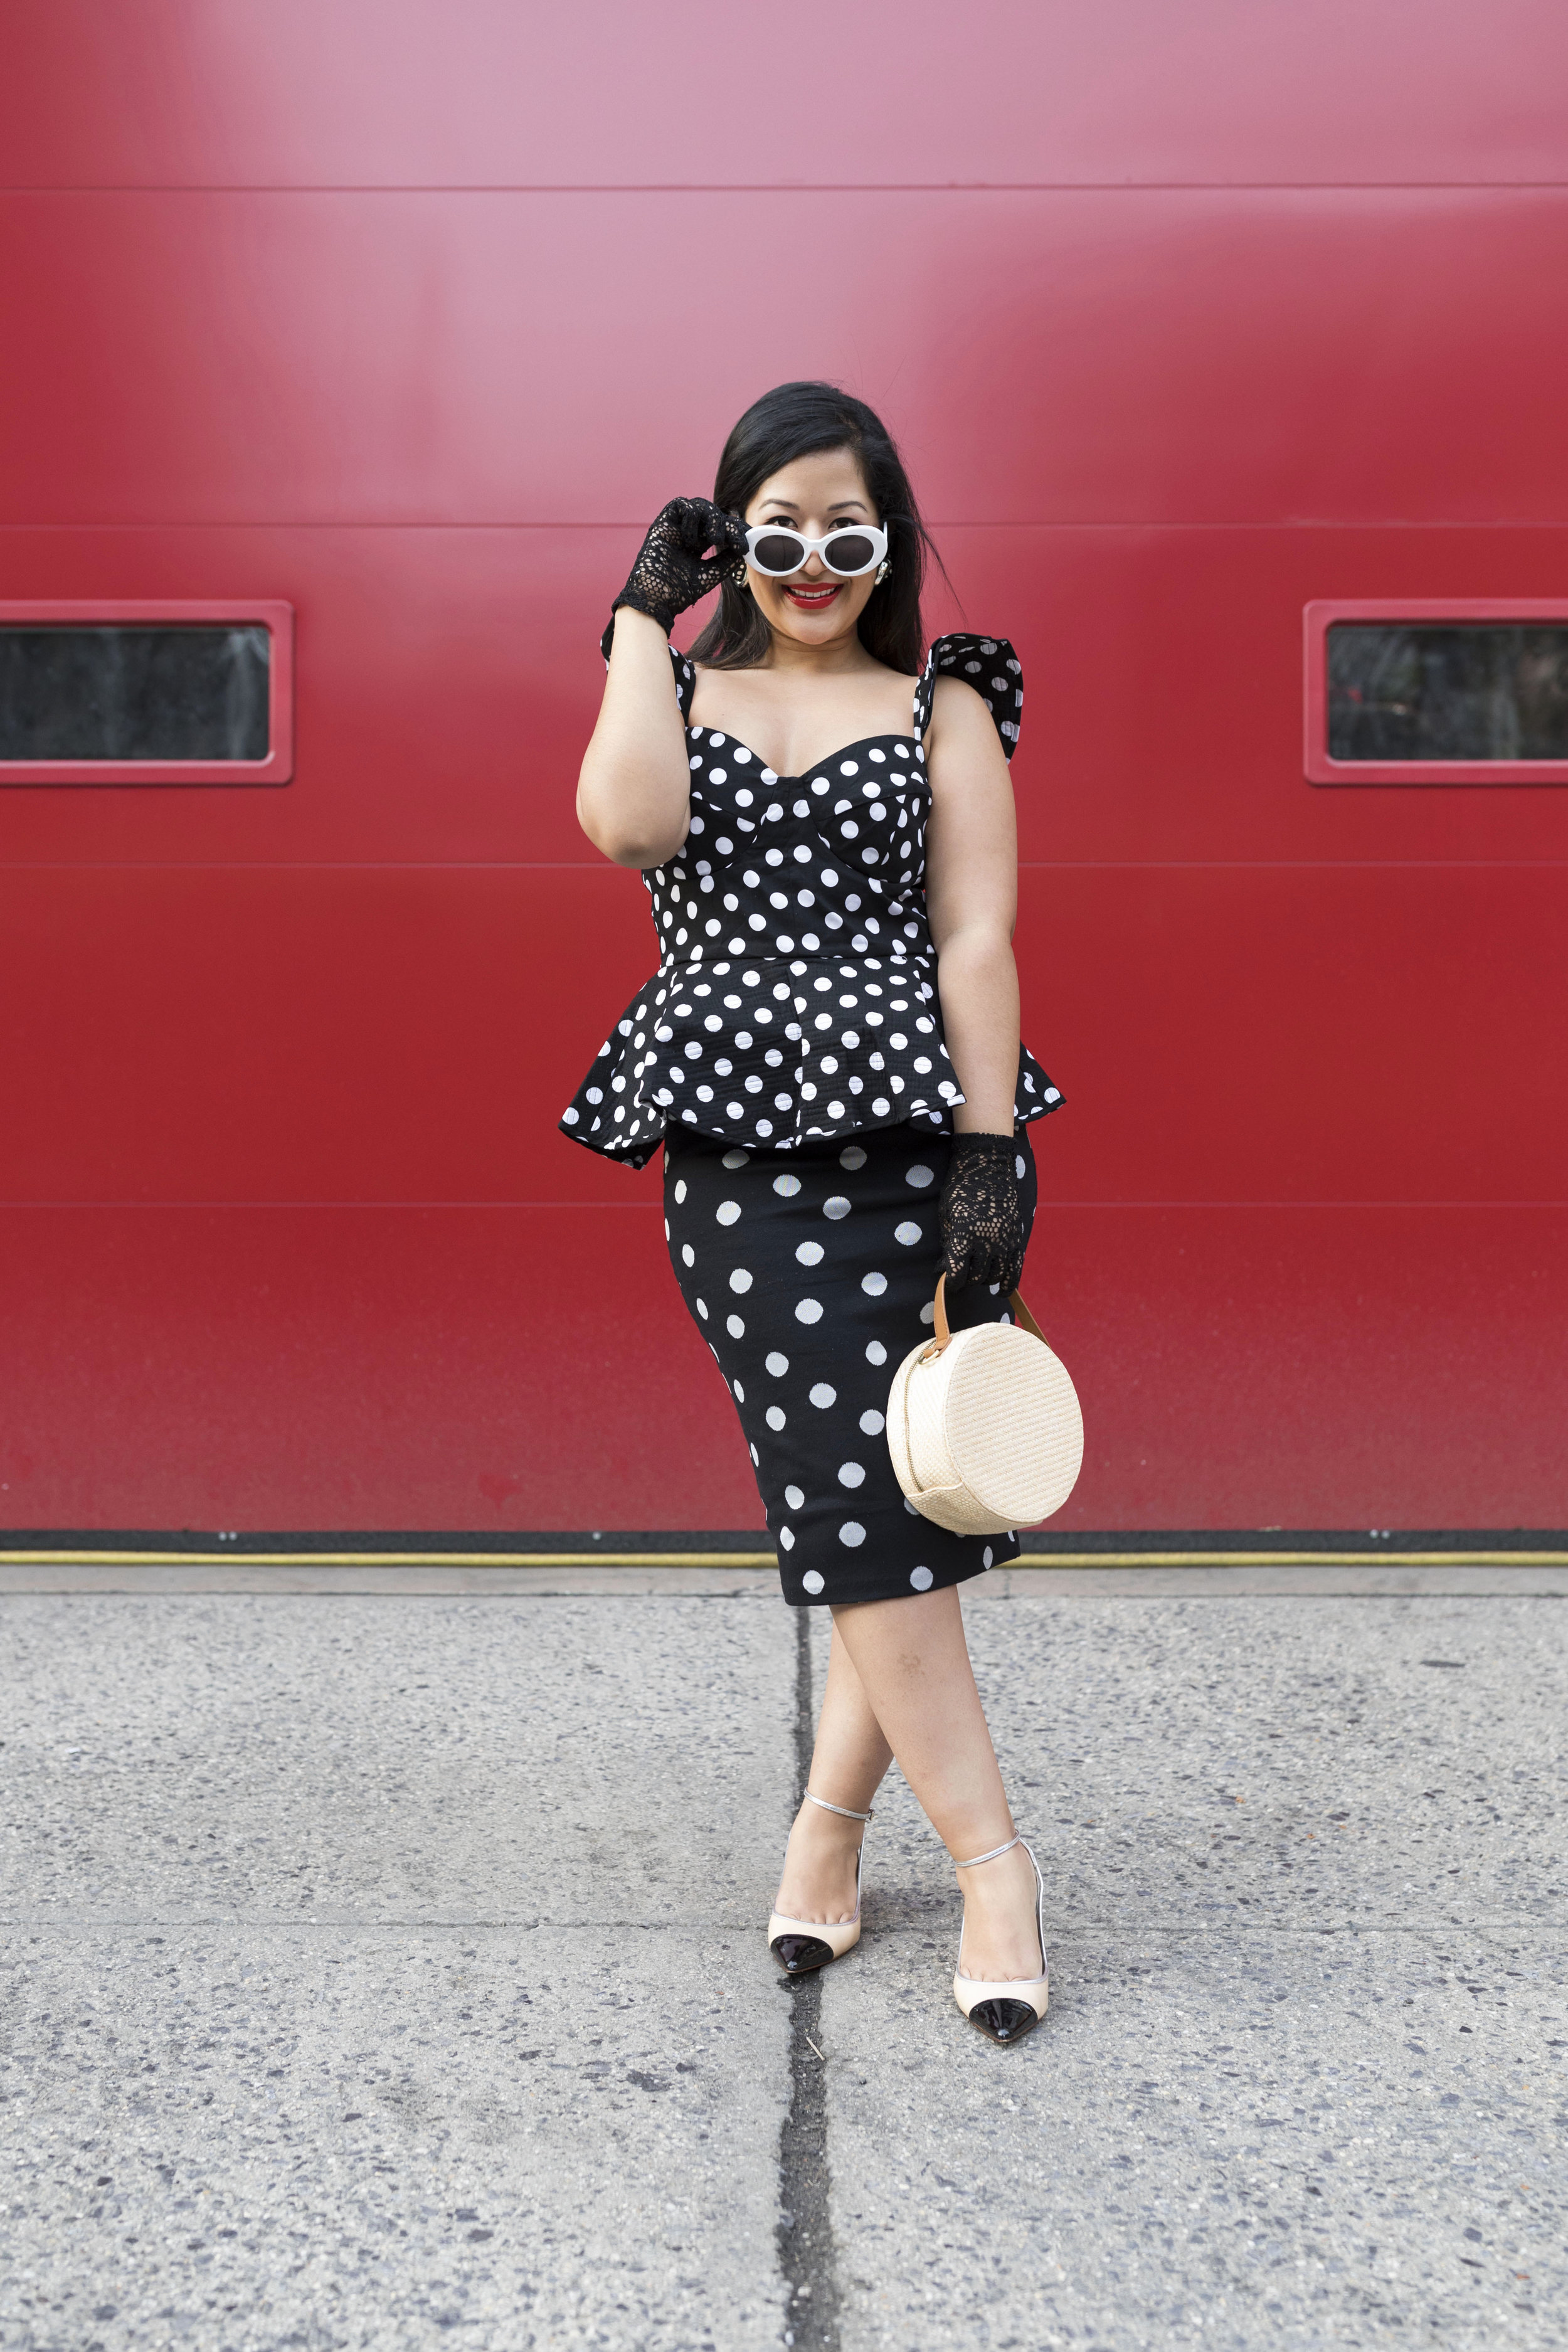 Krity S x Polka Dots x Spring Outfit3.jpg